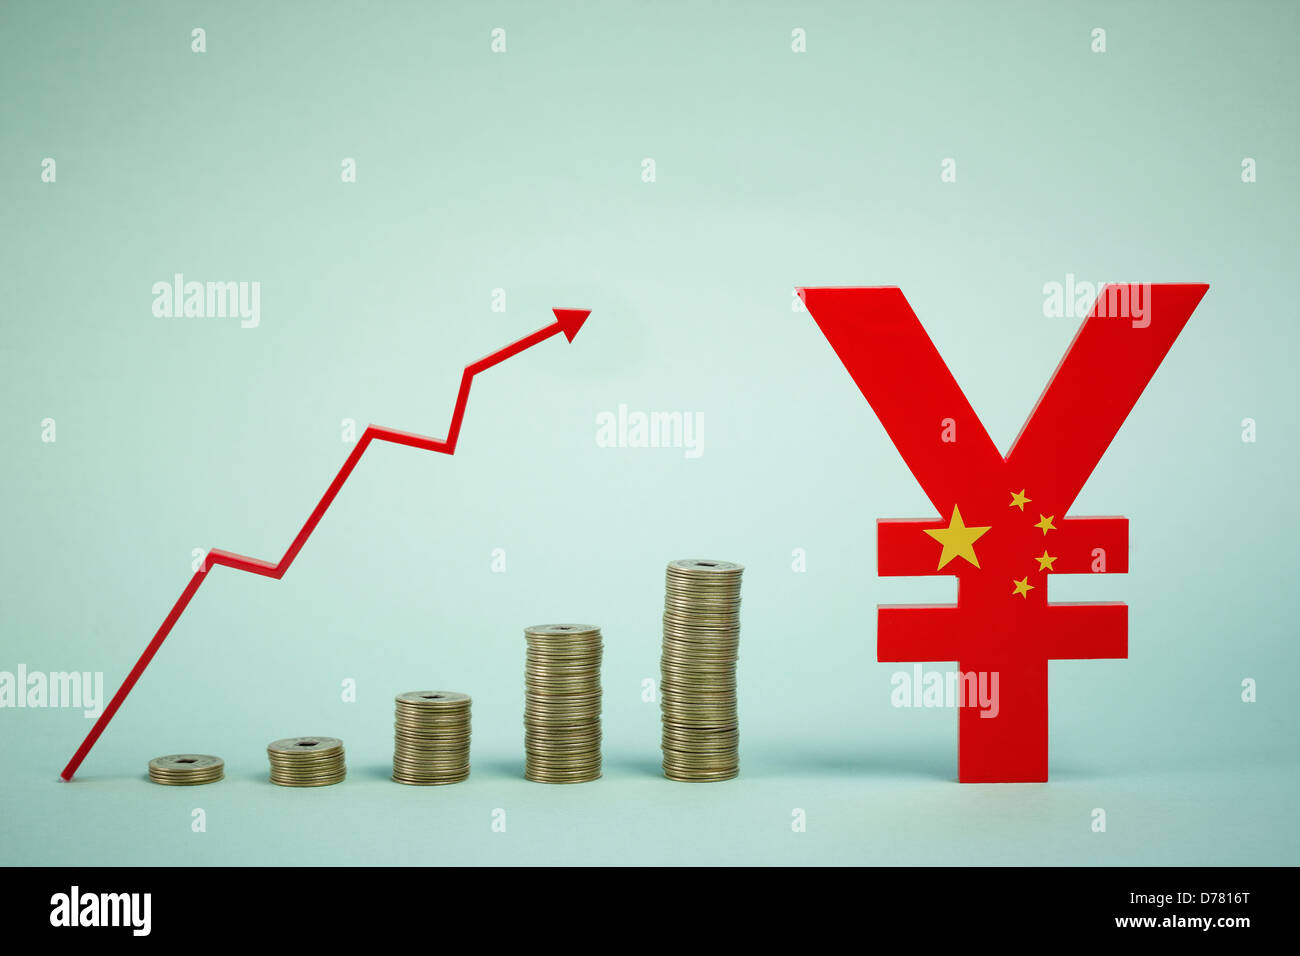 Chinese yuan symbol next to a rising graph of currency stock photo chinese yuan symbol next to a rising graph of currency biocorpaavc Image collections